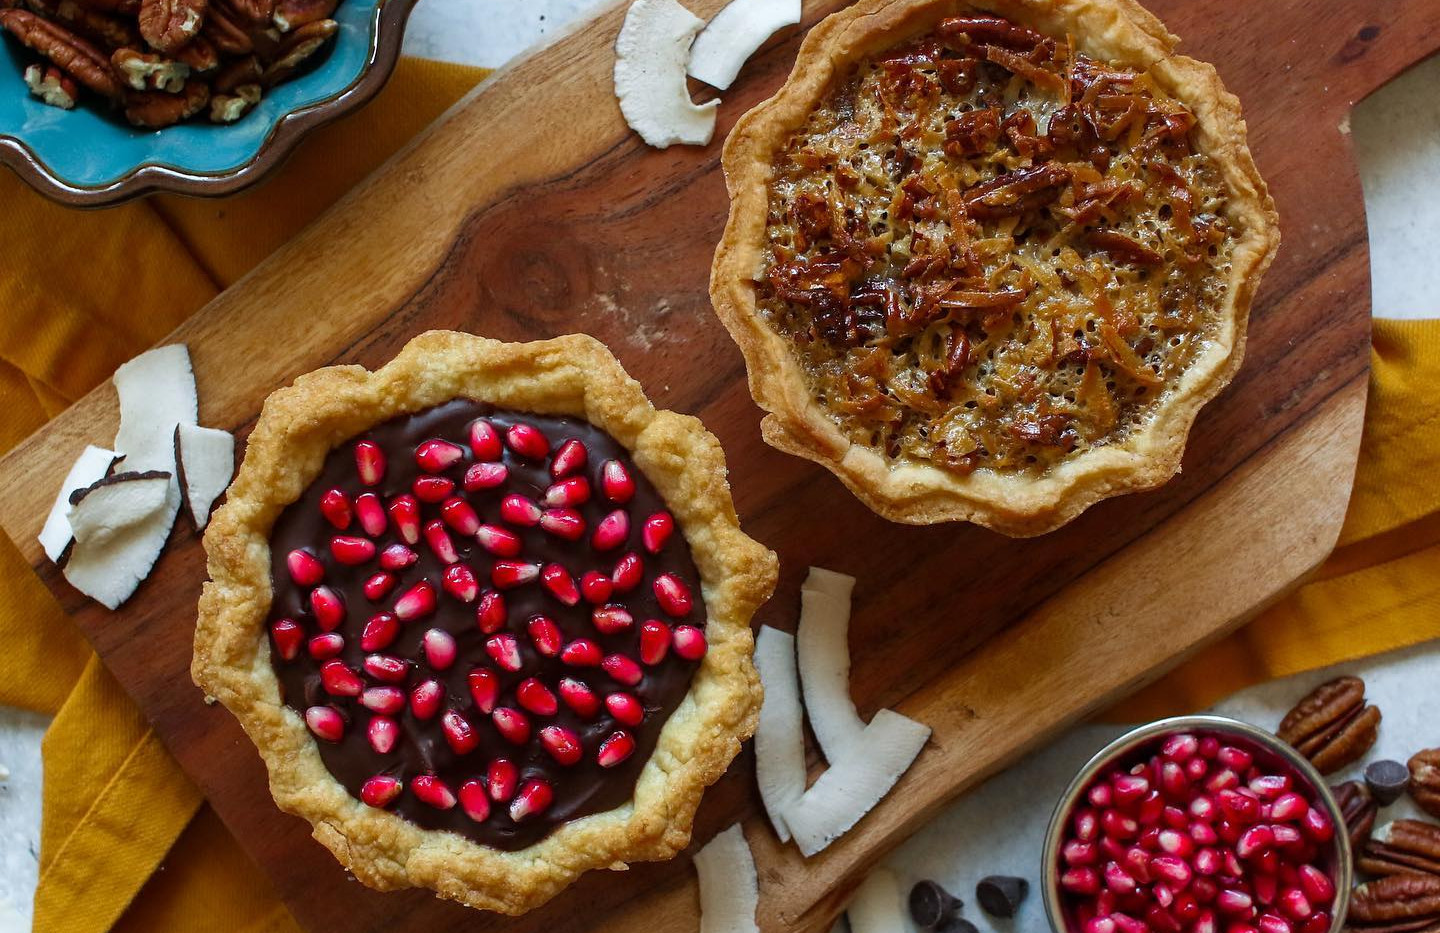 German Chocolate Pecan Pie & Pomegranate Chocolate Ganache Pie